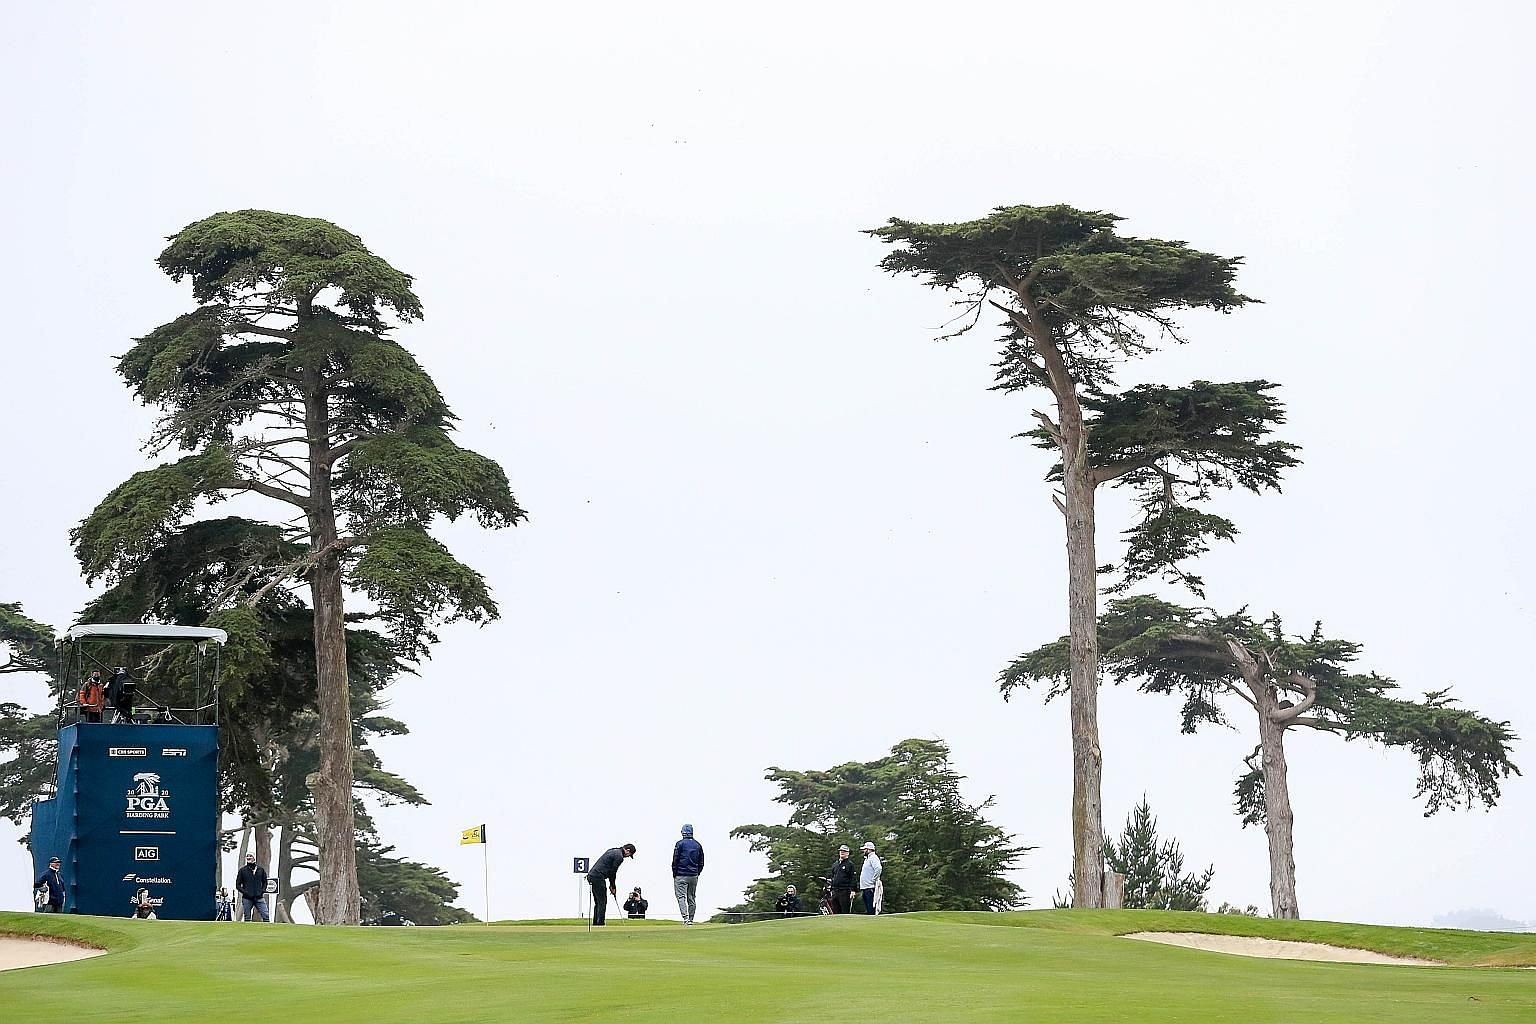 """Brooks Koepka putts on the third green during a practice round ahead of the PGA Championship at TPC Harding Park. The American calls it a """"big boy course"""" with its tight fairways lined by majestic cypress trees."""